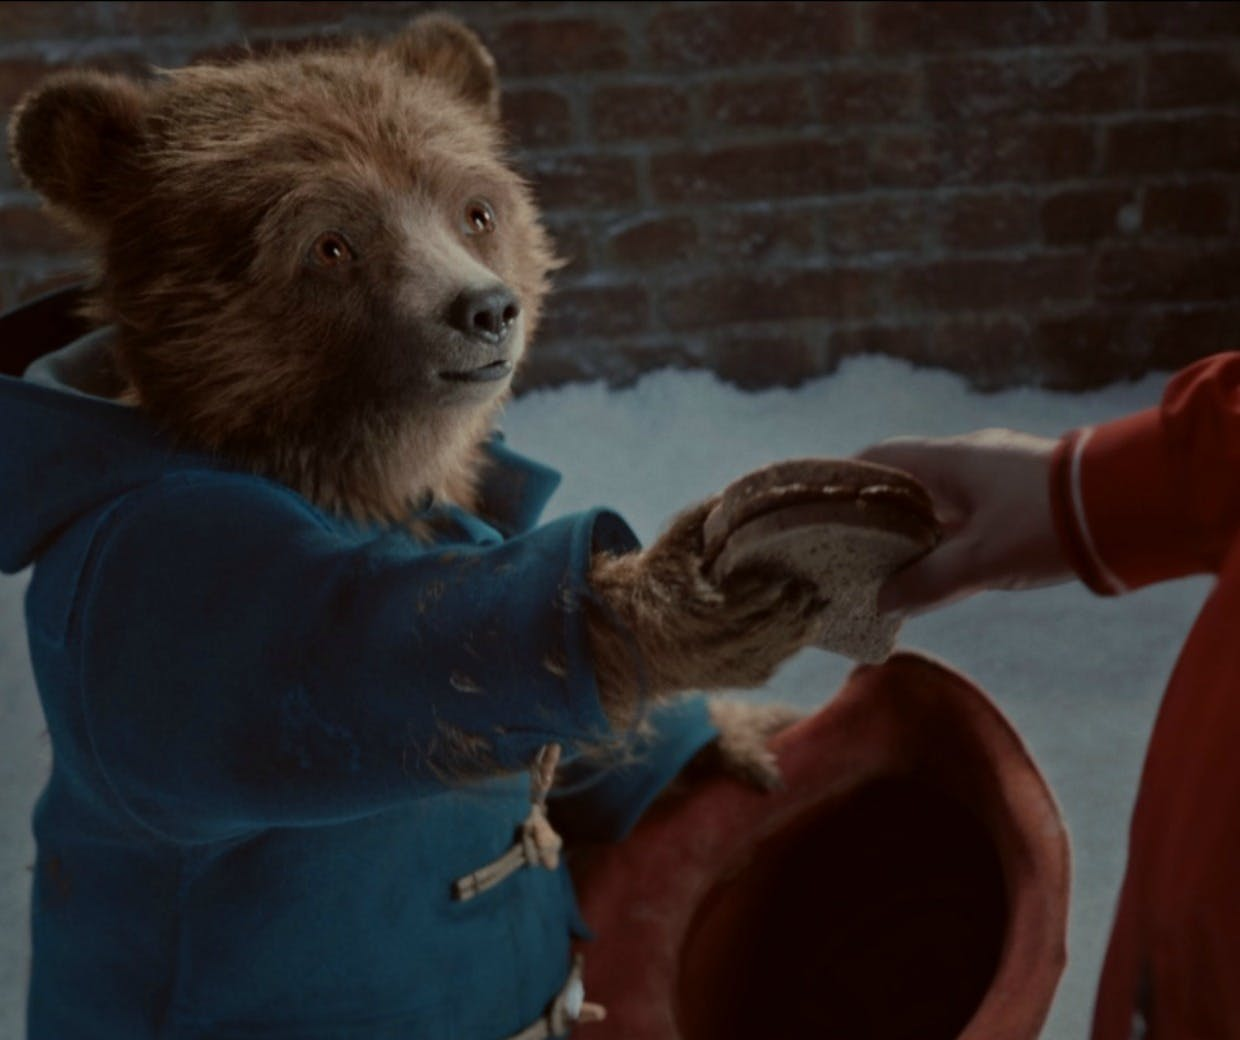 Marks & Spencer's Christmas campaign featuring Paddington bear